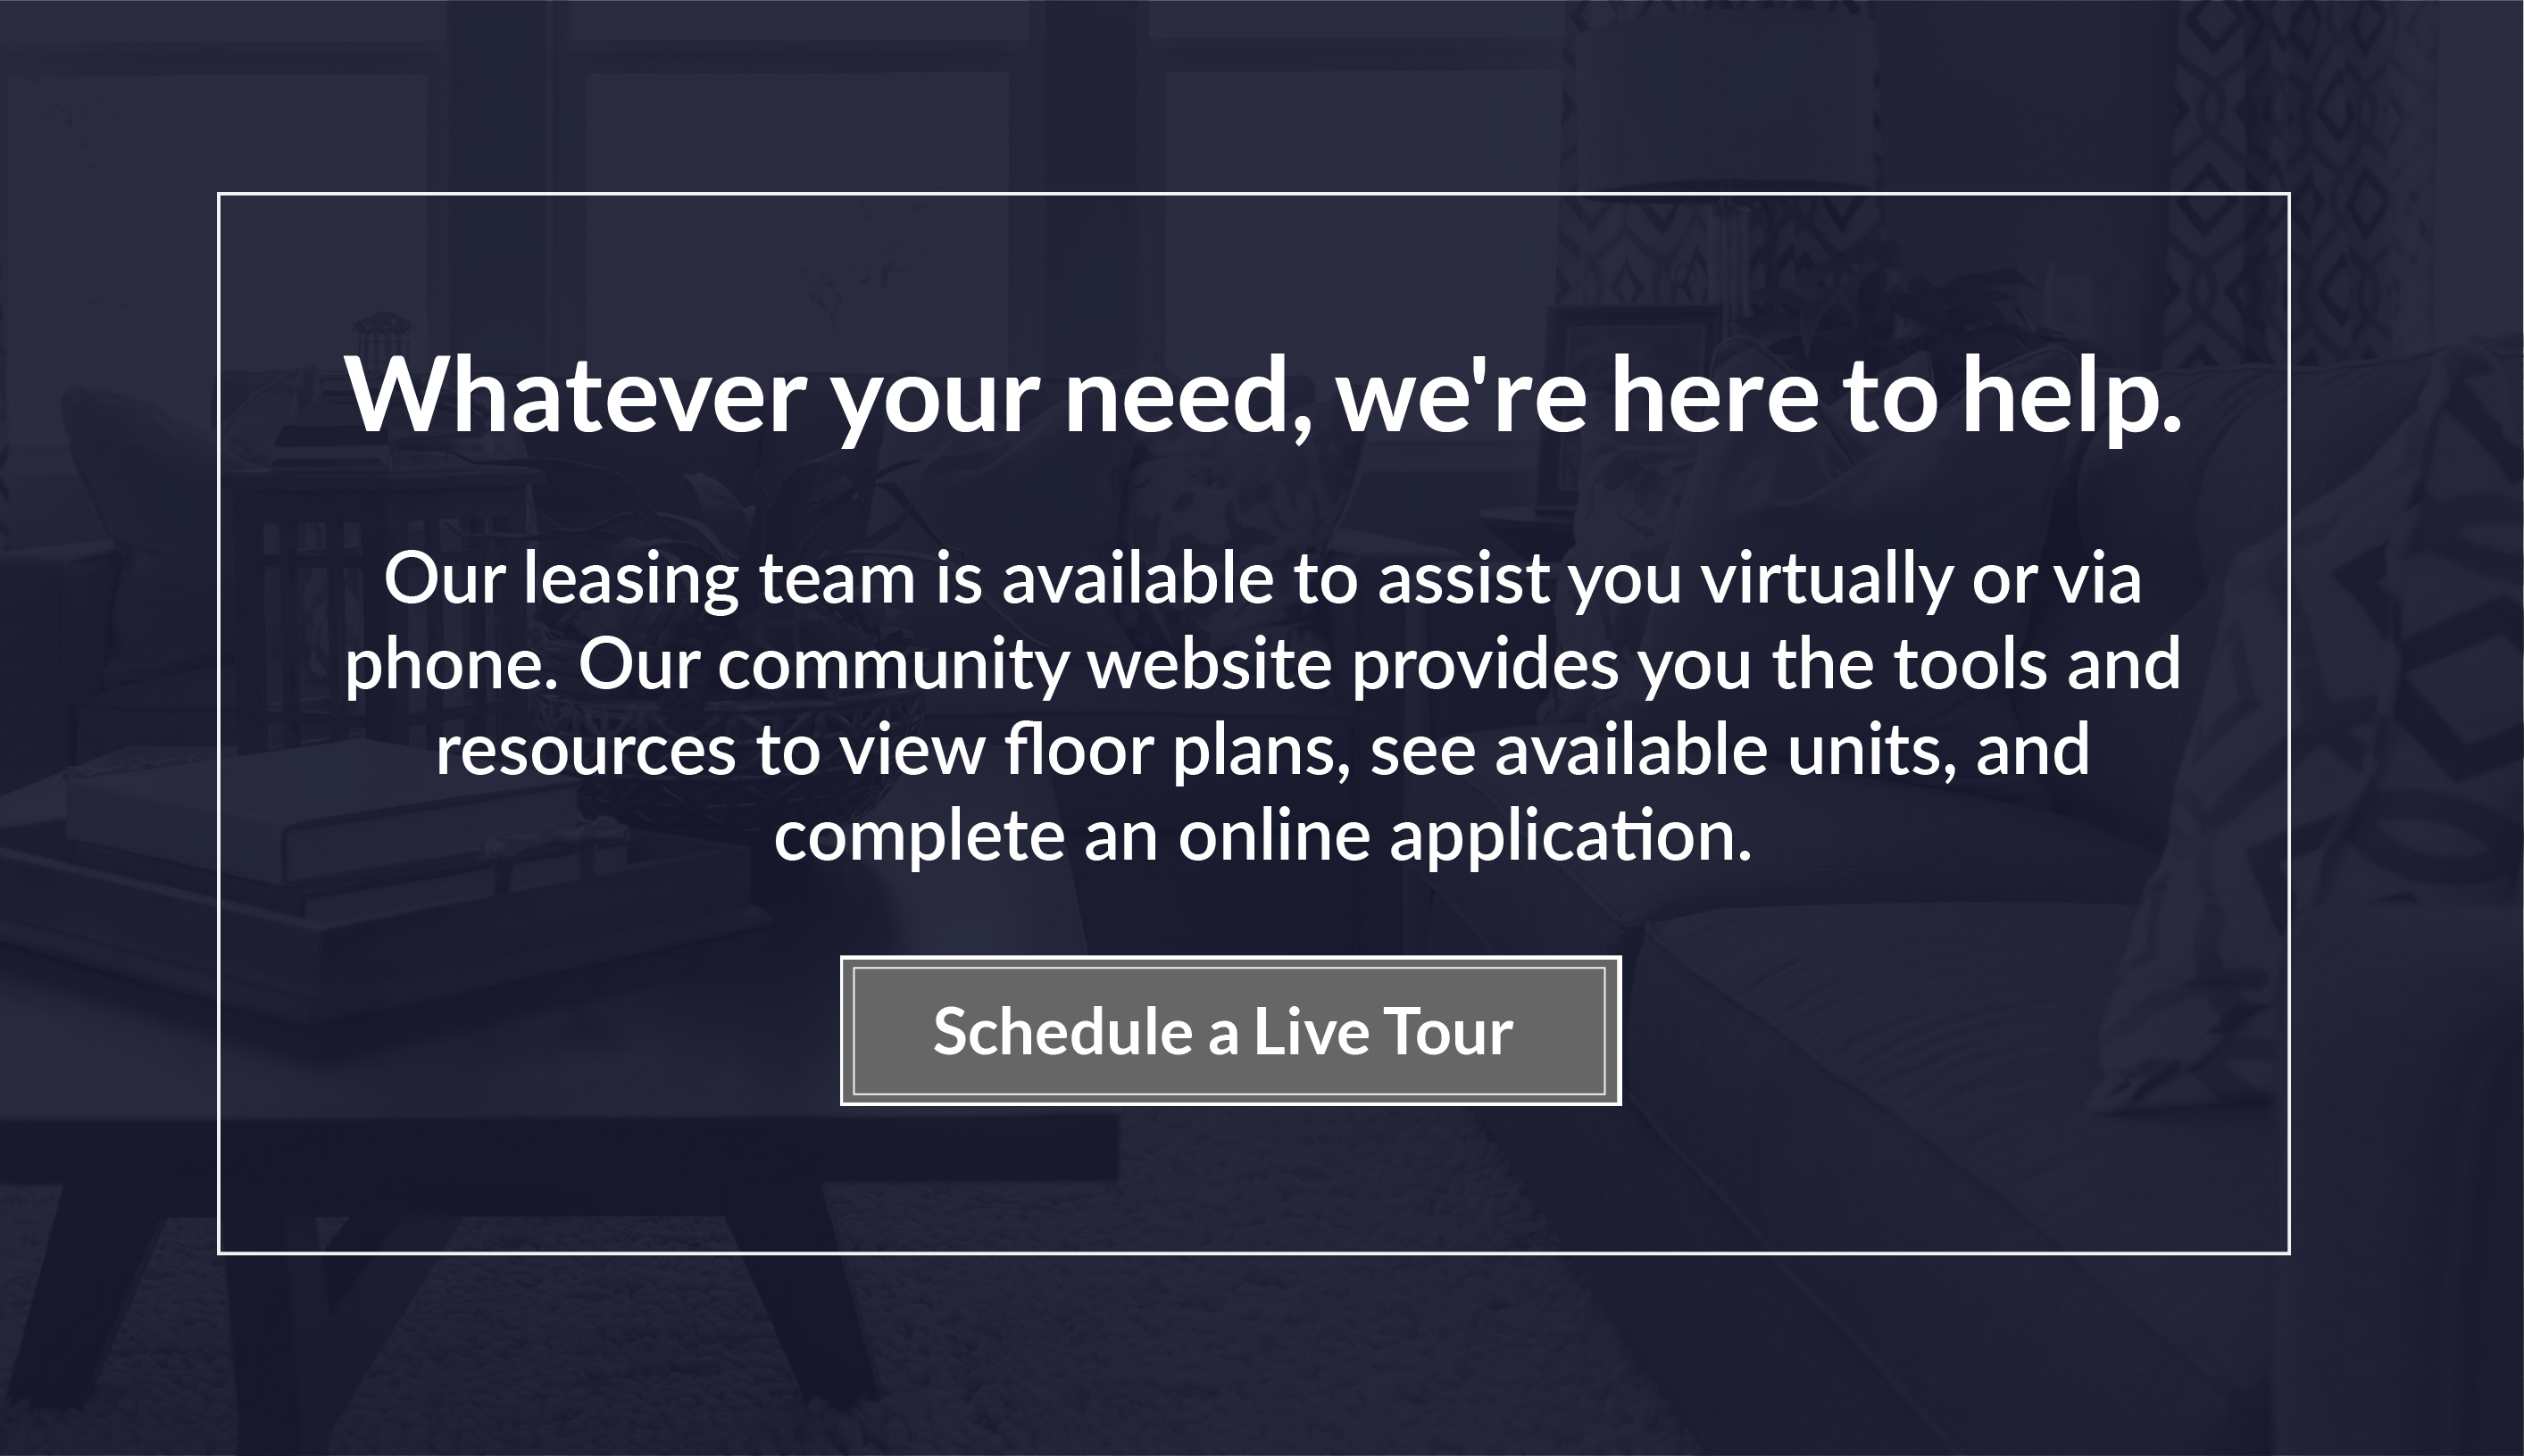 Our leasing team is available to assist you virtually or via phone. Our community website provides you the tools and resources to view floor plans, see available units, and complete an online application. Whatever your need, we're here to help. Schedule a live tour.